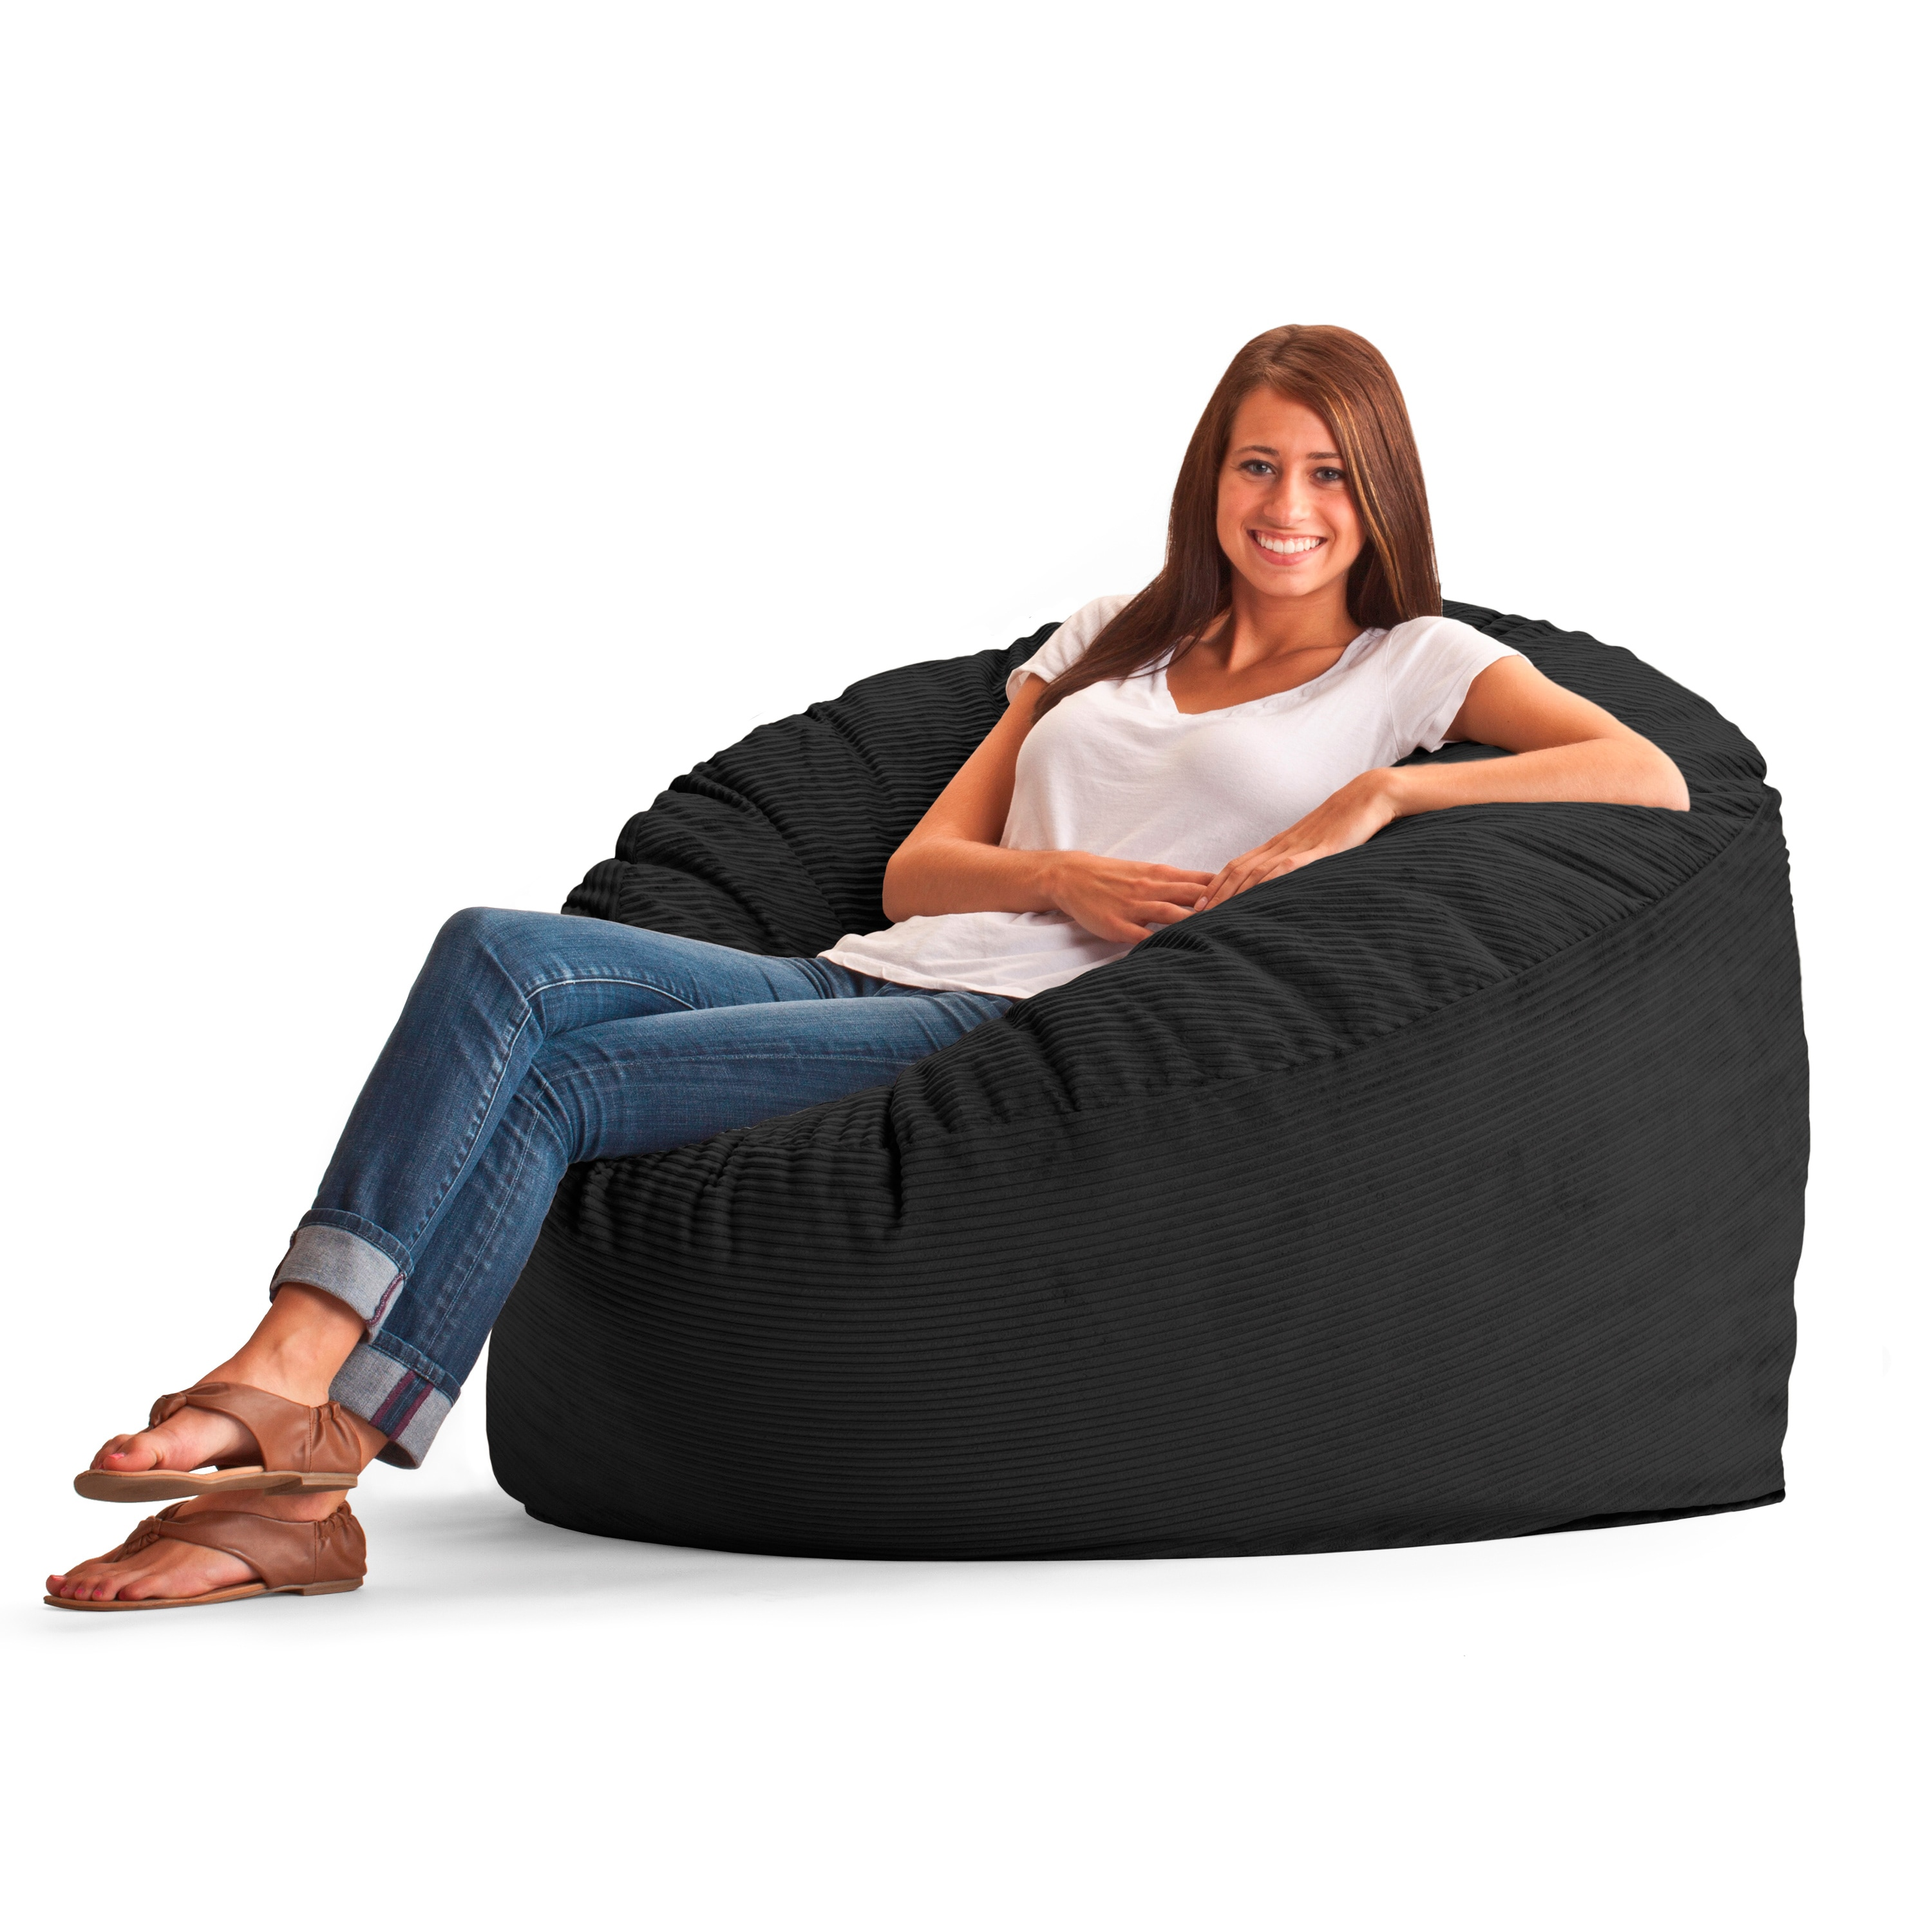 FufSack Wide Wale Corduroy 4-foot Large Bean Bag Chair - Free Shipping  Today - Overstock.com - 15503546